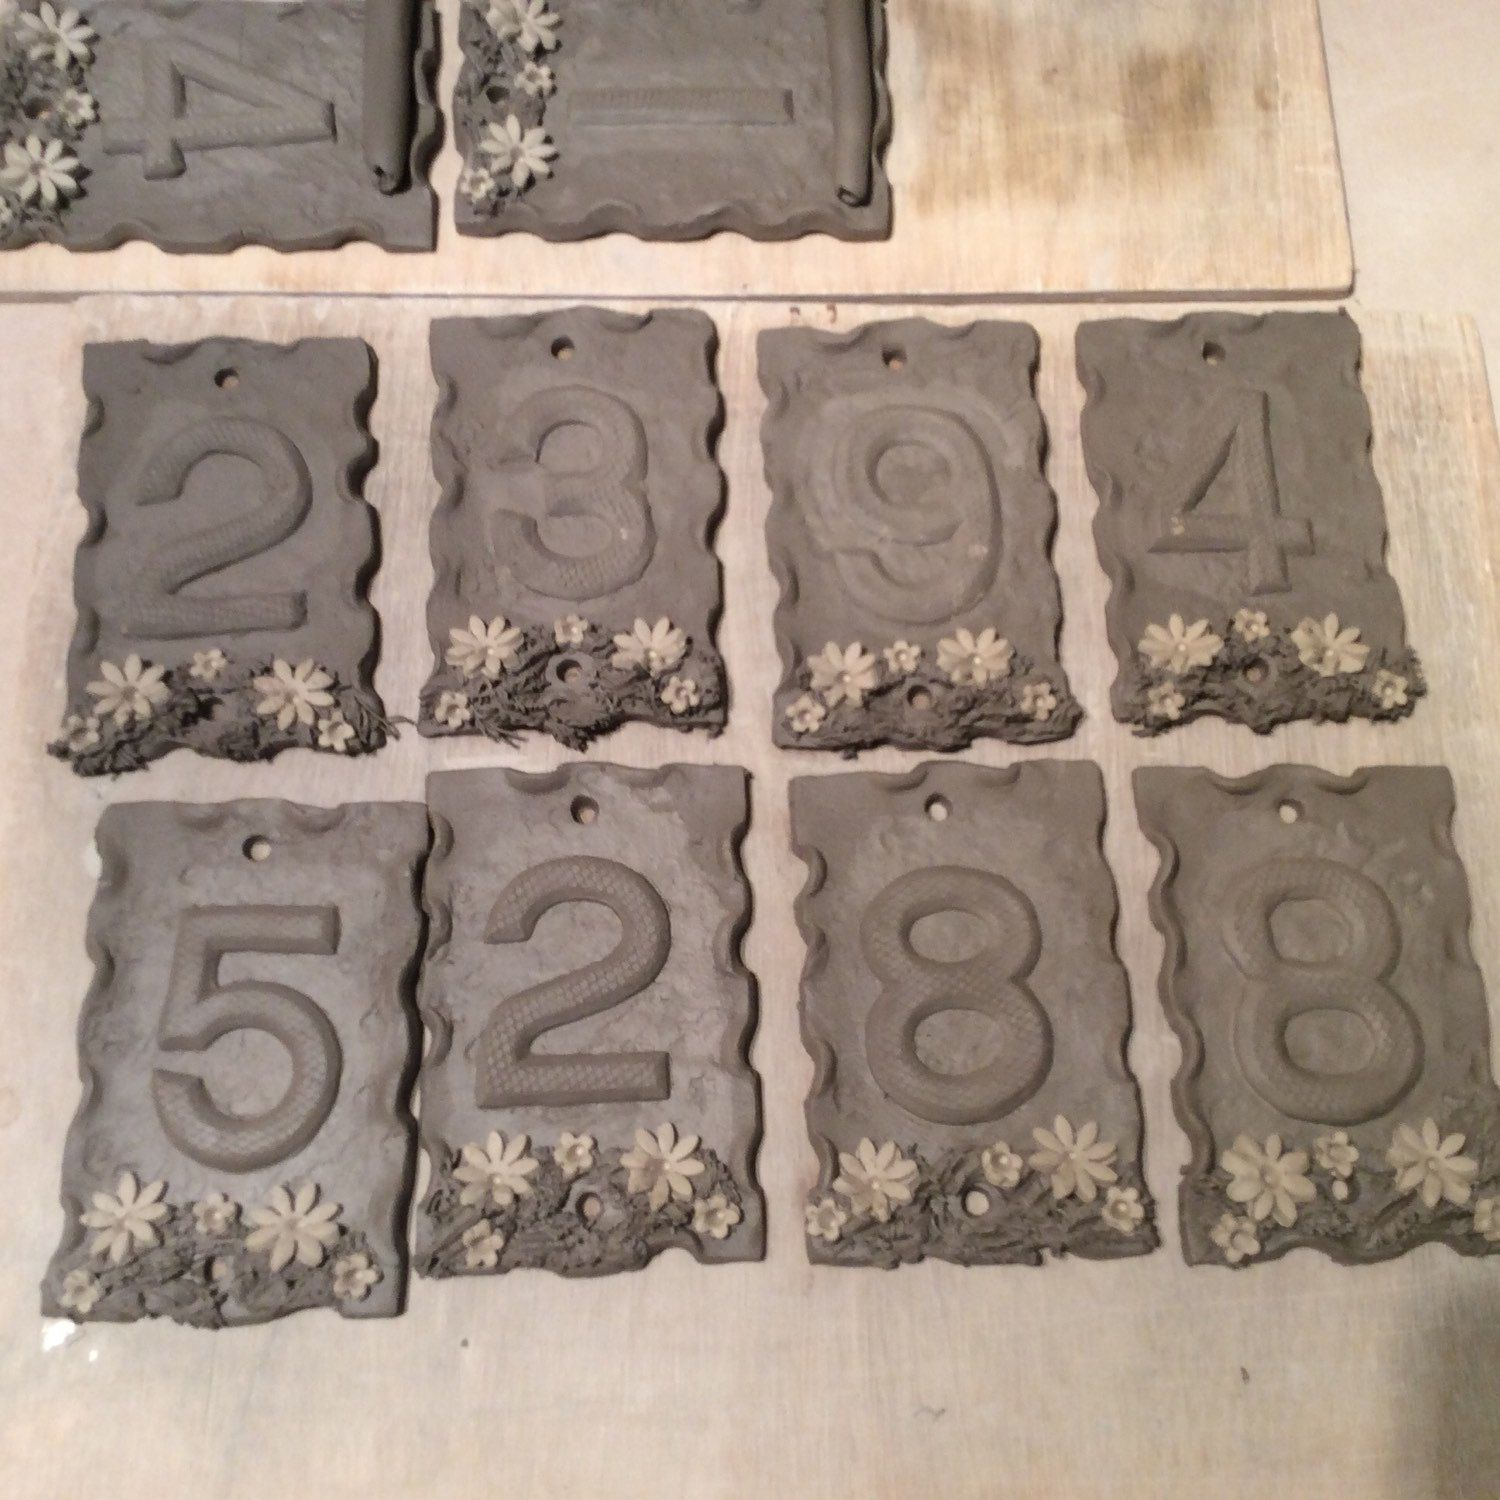 House numbers ceramic door number plaque frost proof 55 x 35 a few more house numbers almost ready for glazing tile house numbersceramic dailygadgetfo Choice Image